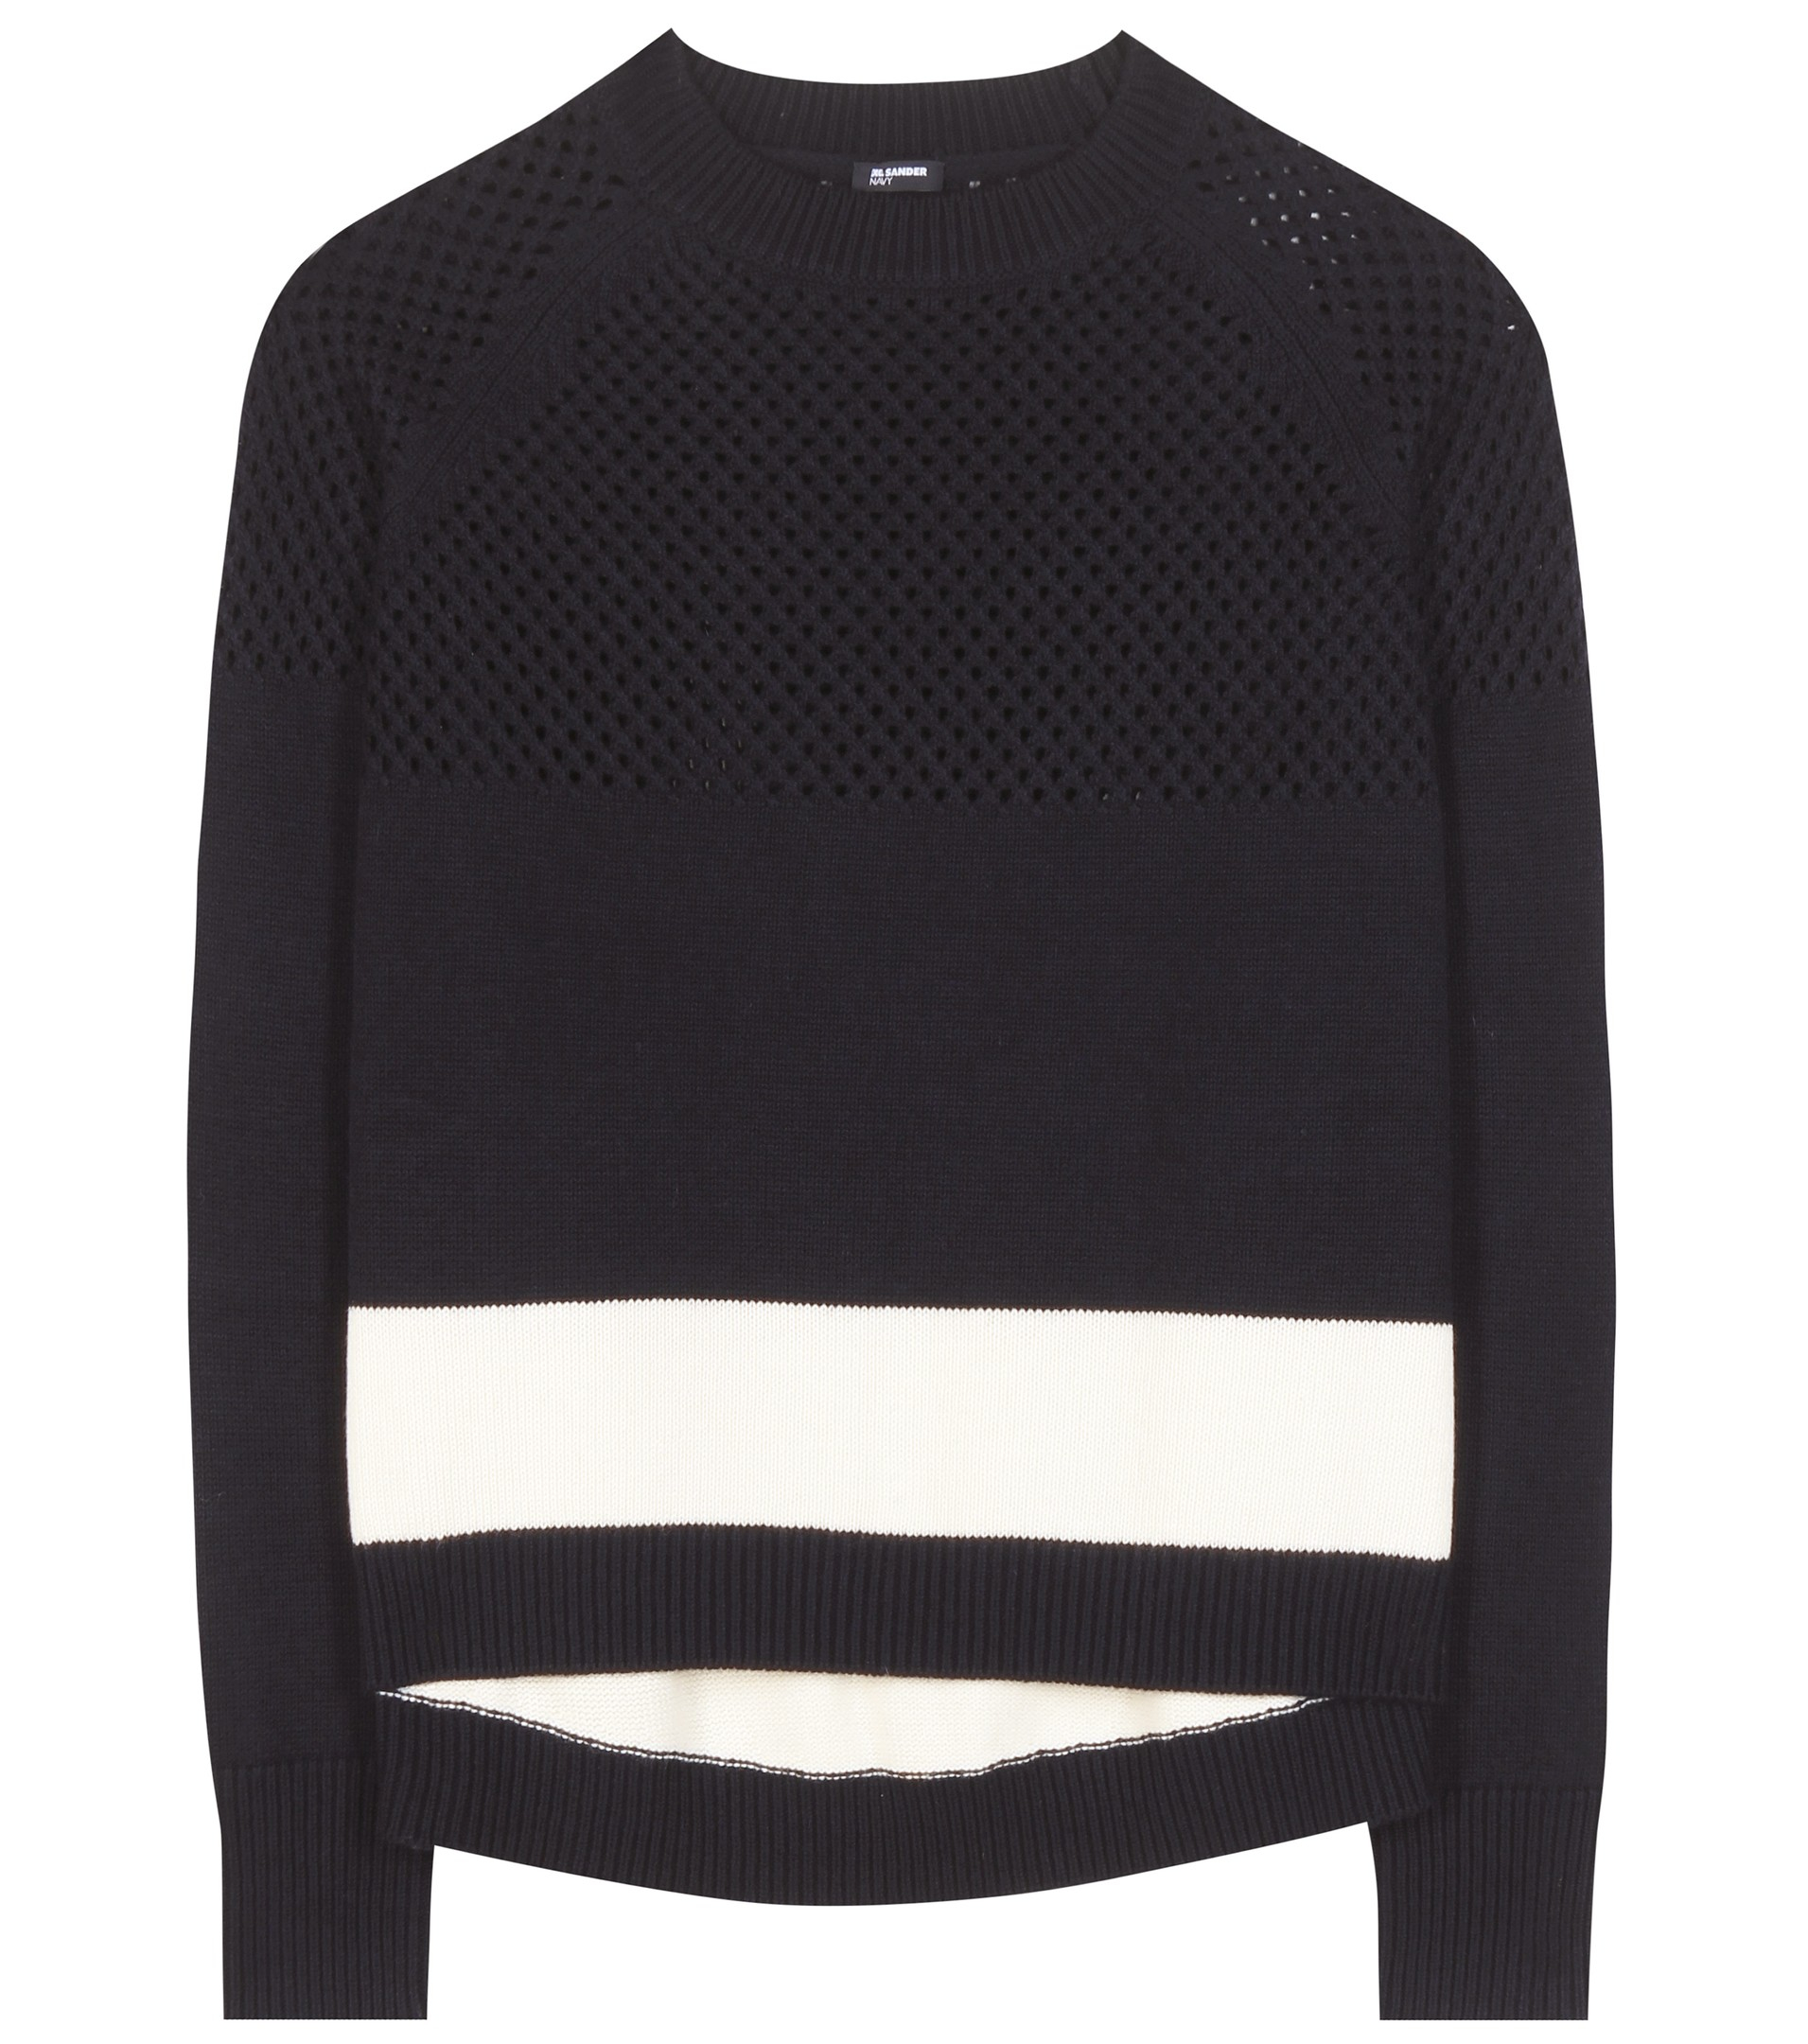 Jil sander navy Wool And Cotton Sweater in Black | Lyst